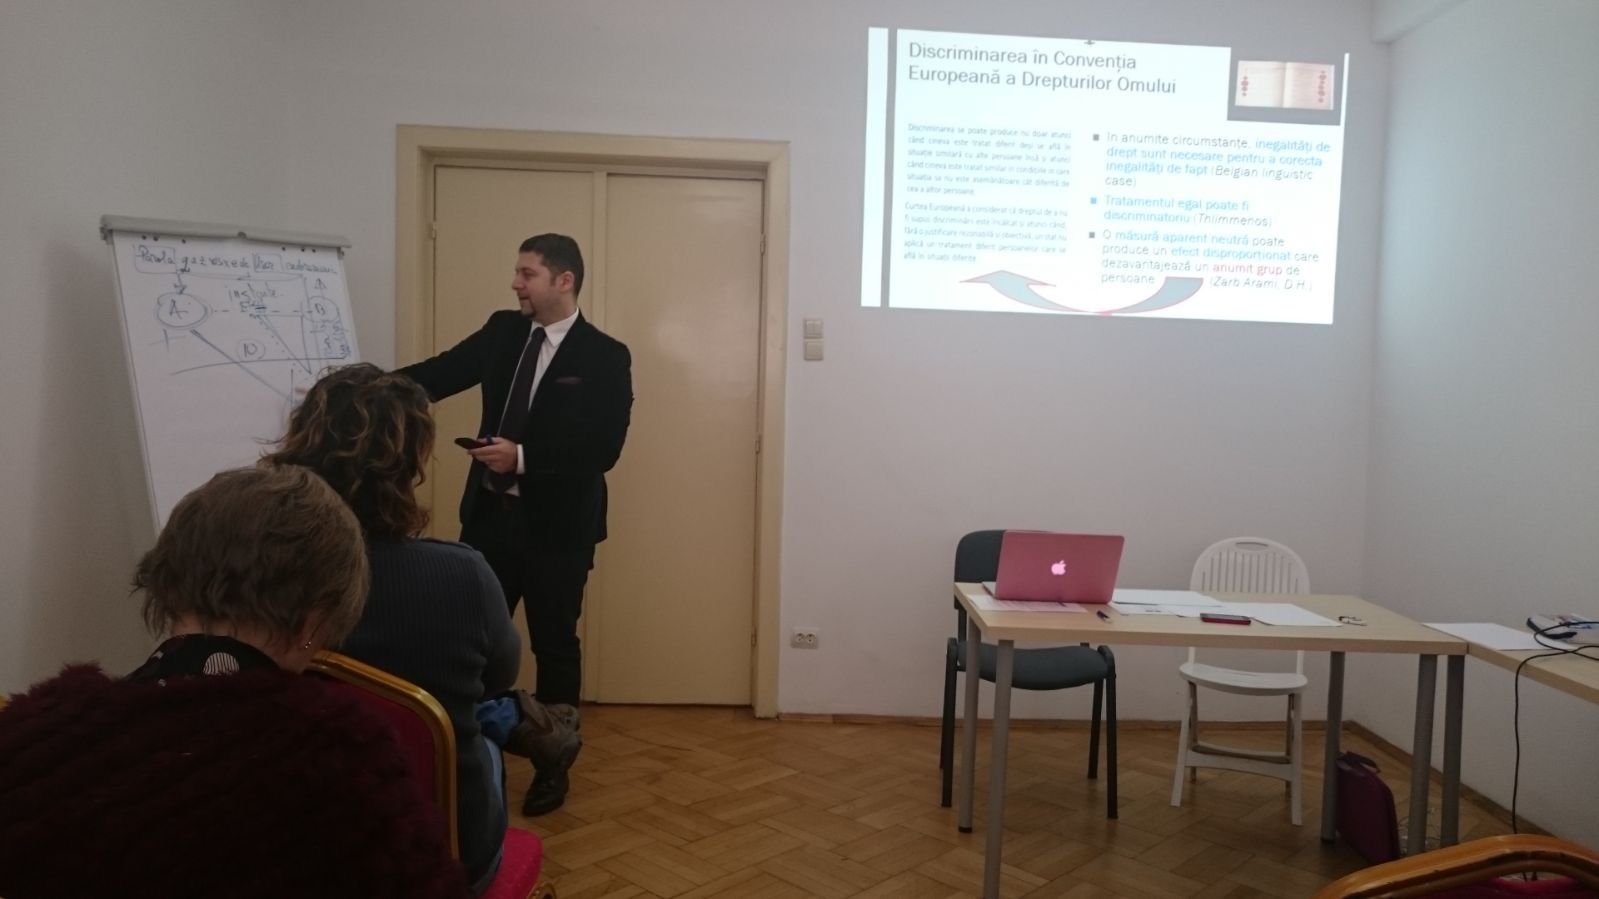 Training of lawyers on Anti-discrimination and Roma issues